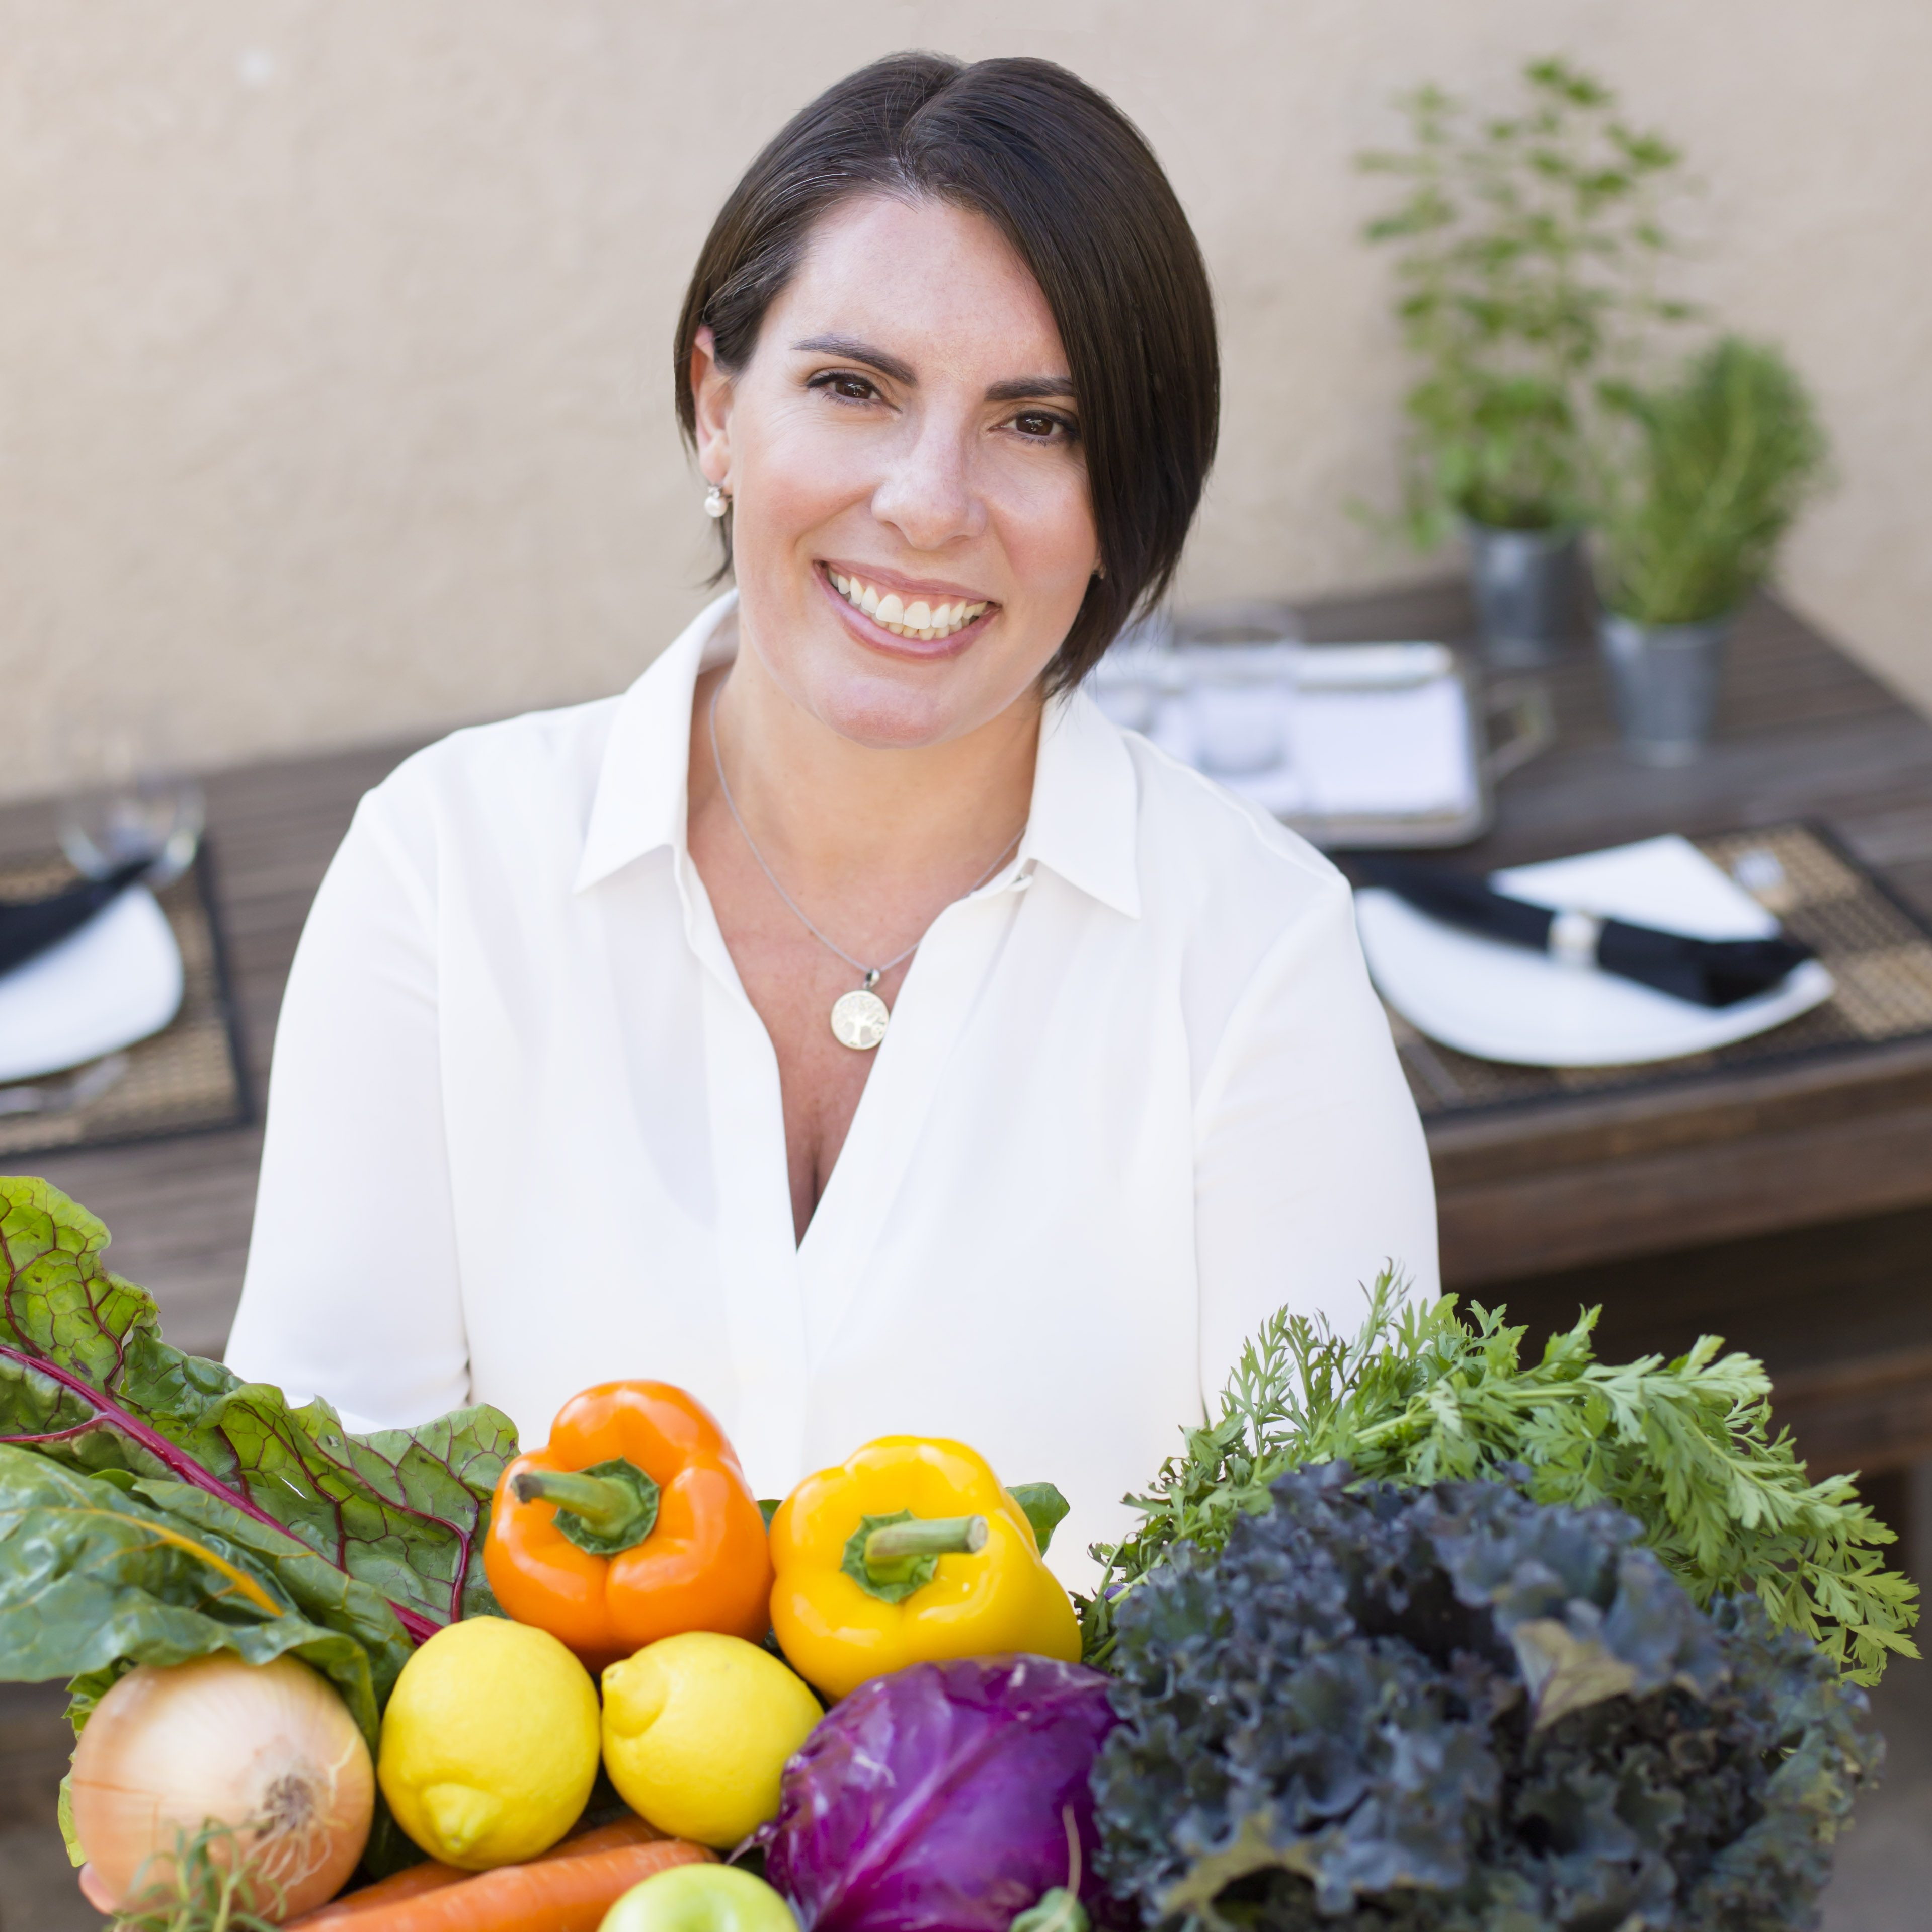 Homeopath & Nutritionist